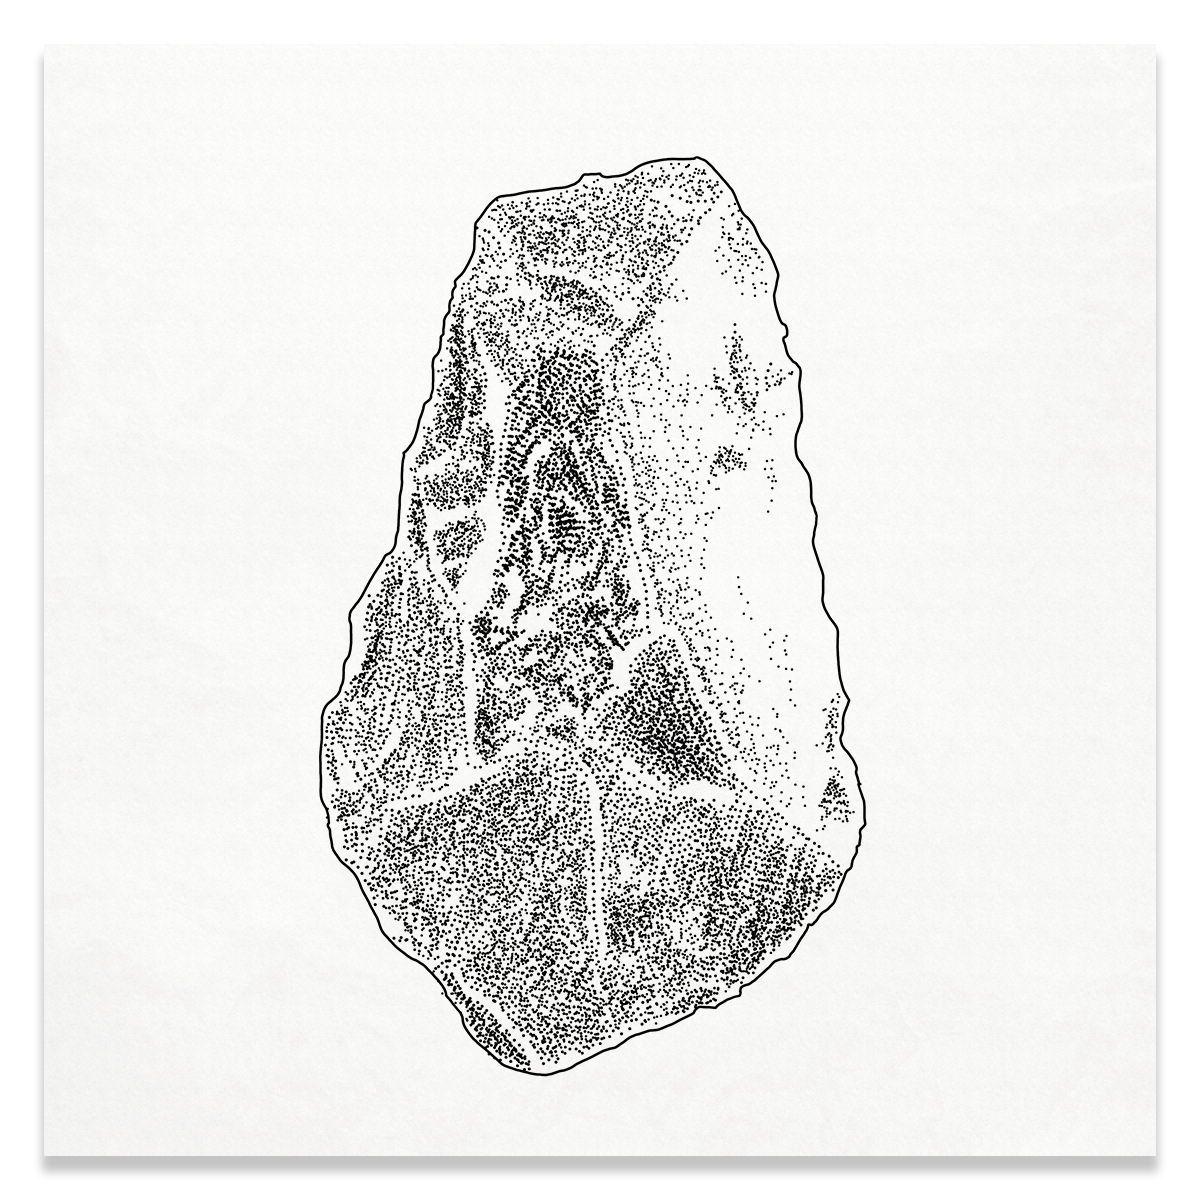 Stones_0003_4.png